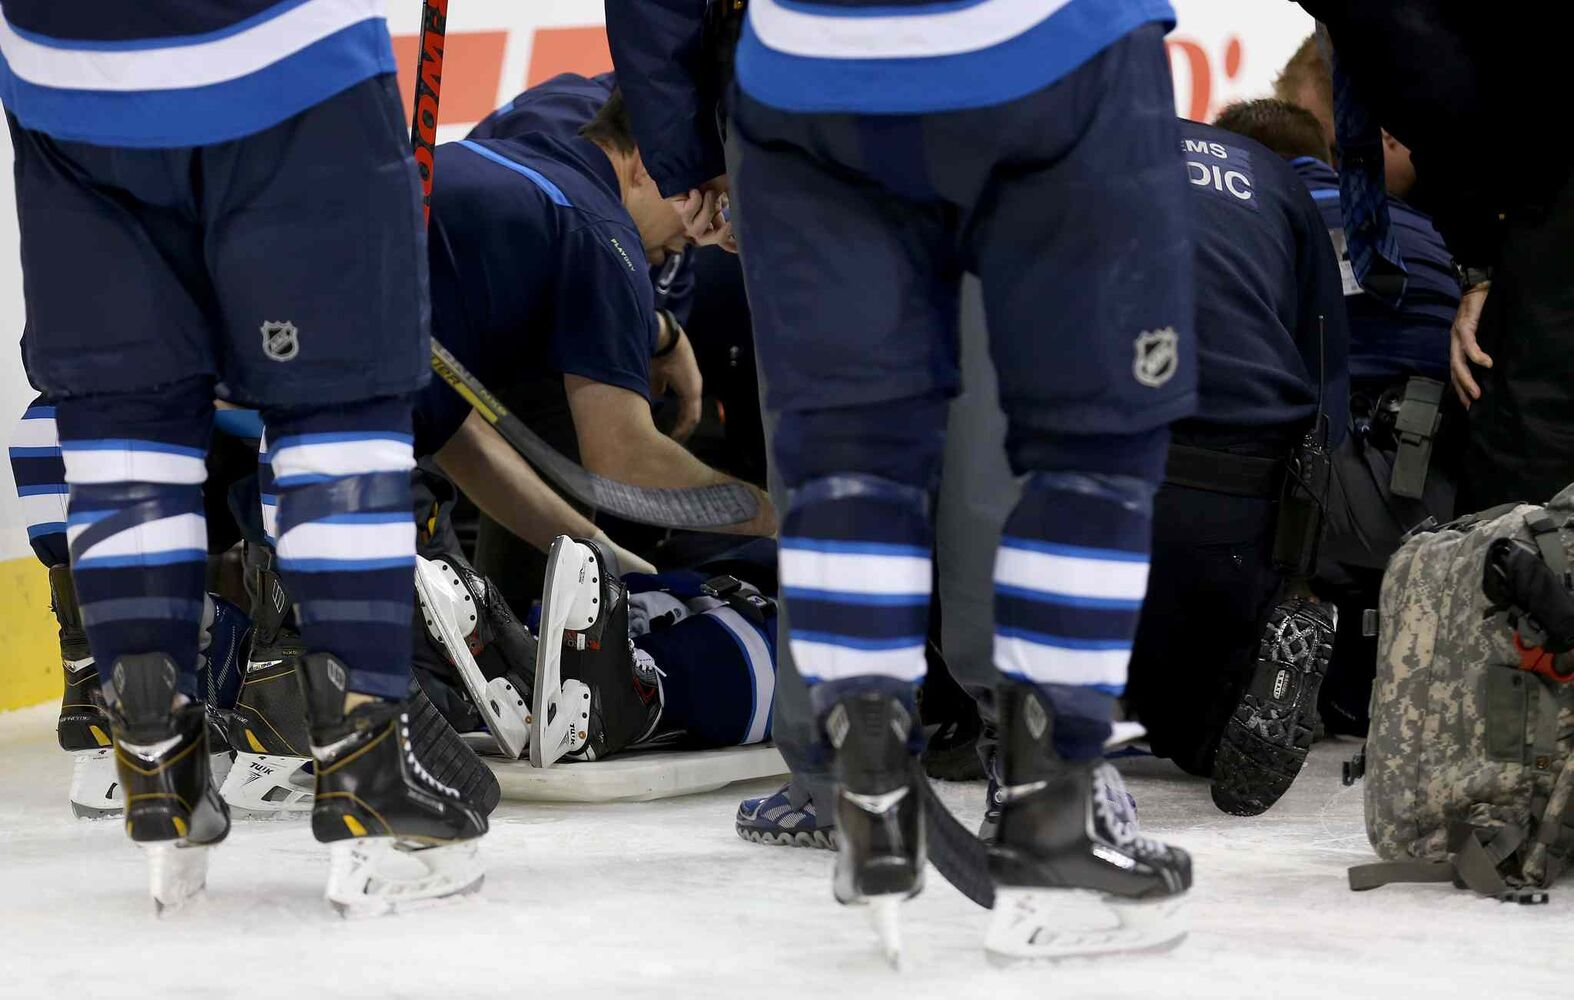 Winnipeg Jets' Jacob Trouba is attended to by medical personnel on the ice. (TREVOR HAGAN / WINNIPEG FREE PRESS)